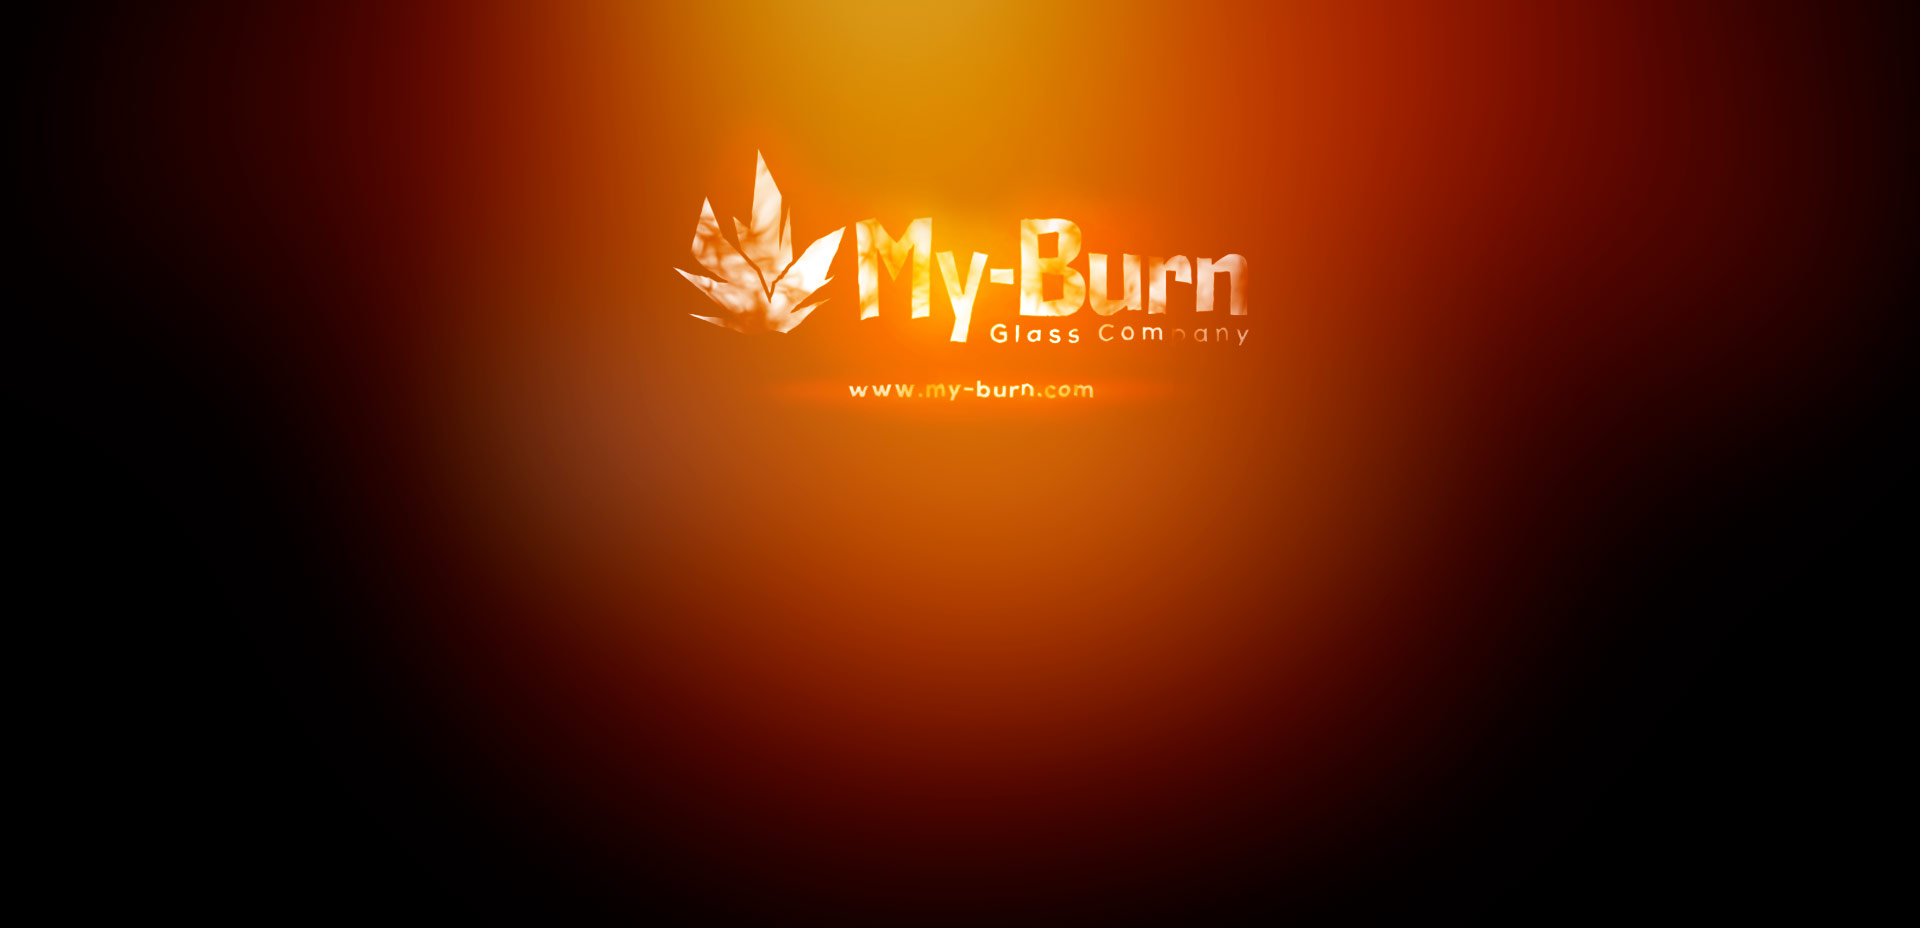 My-Burn.com Blurred Header Logo